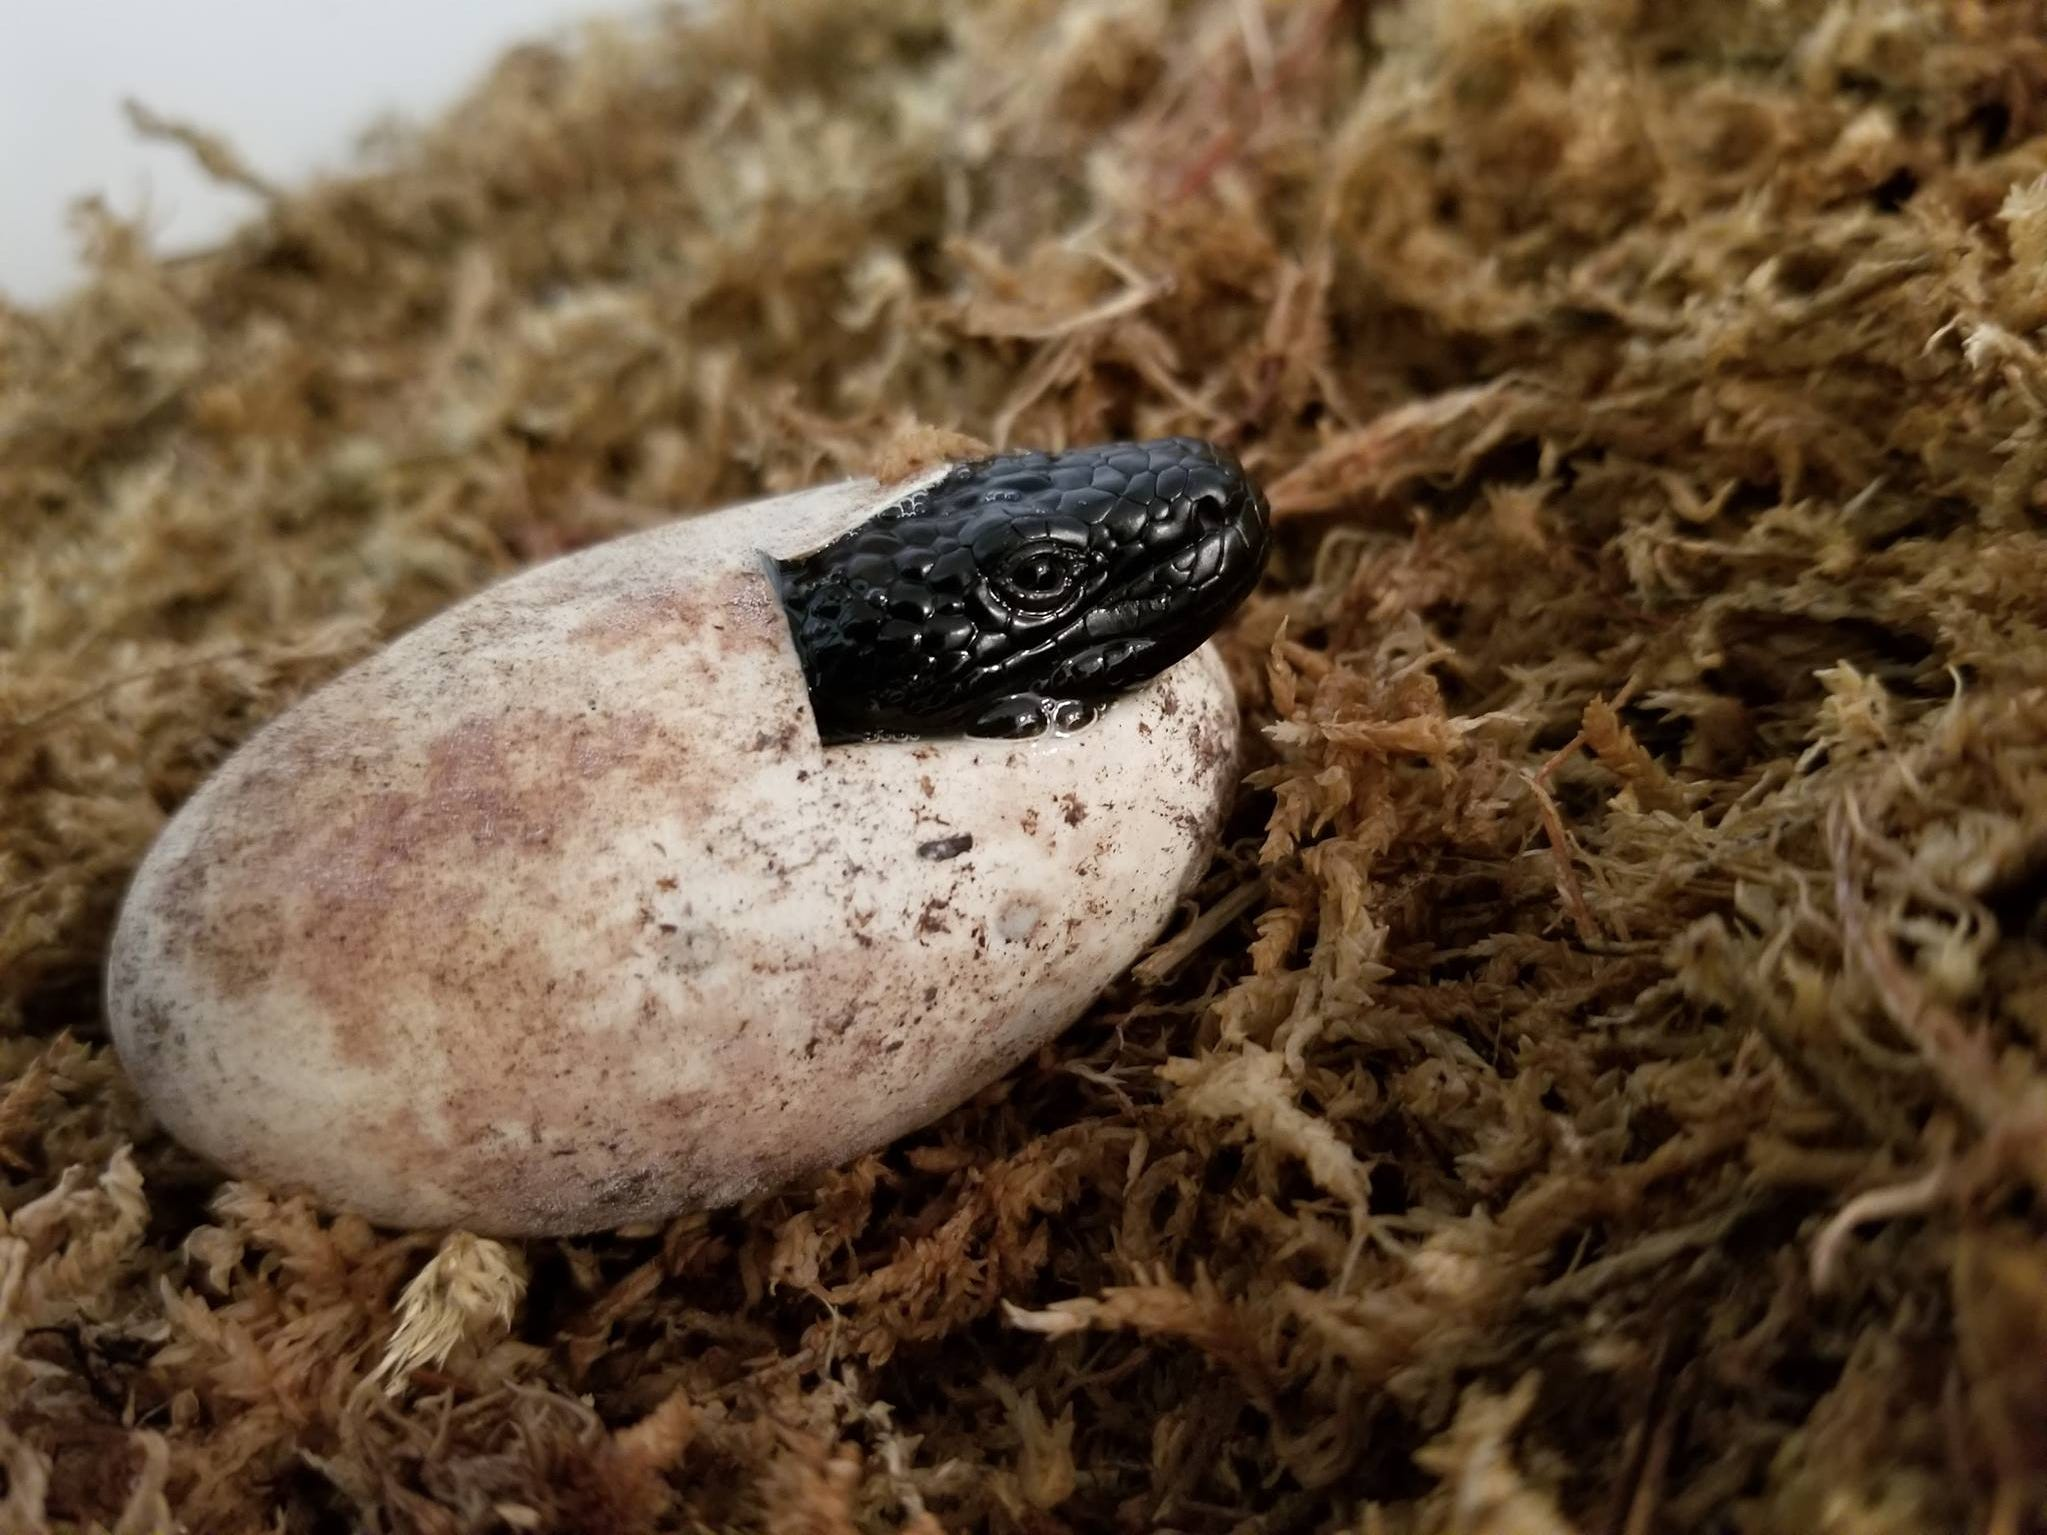 Seven Mexican beaded lizards hatched between late January and early February and are on view in the Oklahoma City Zoo's herpetarium building.